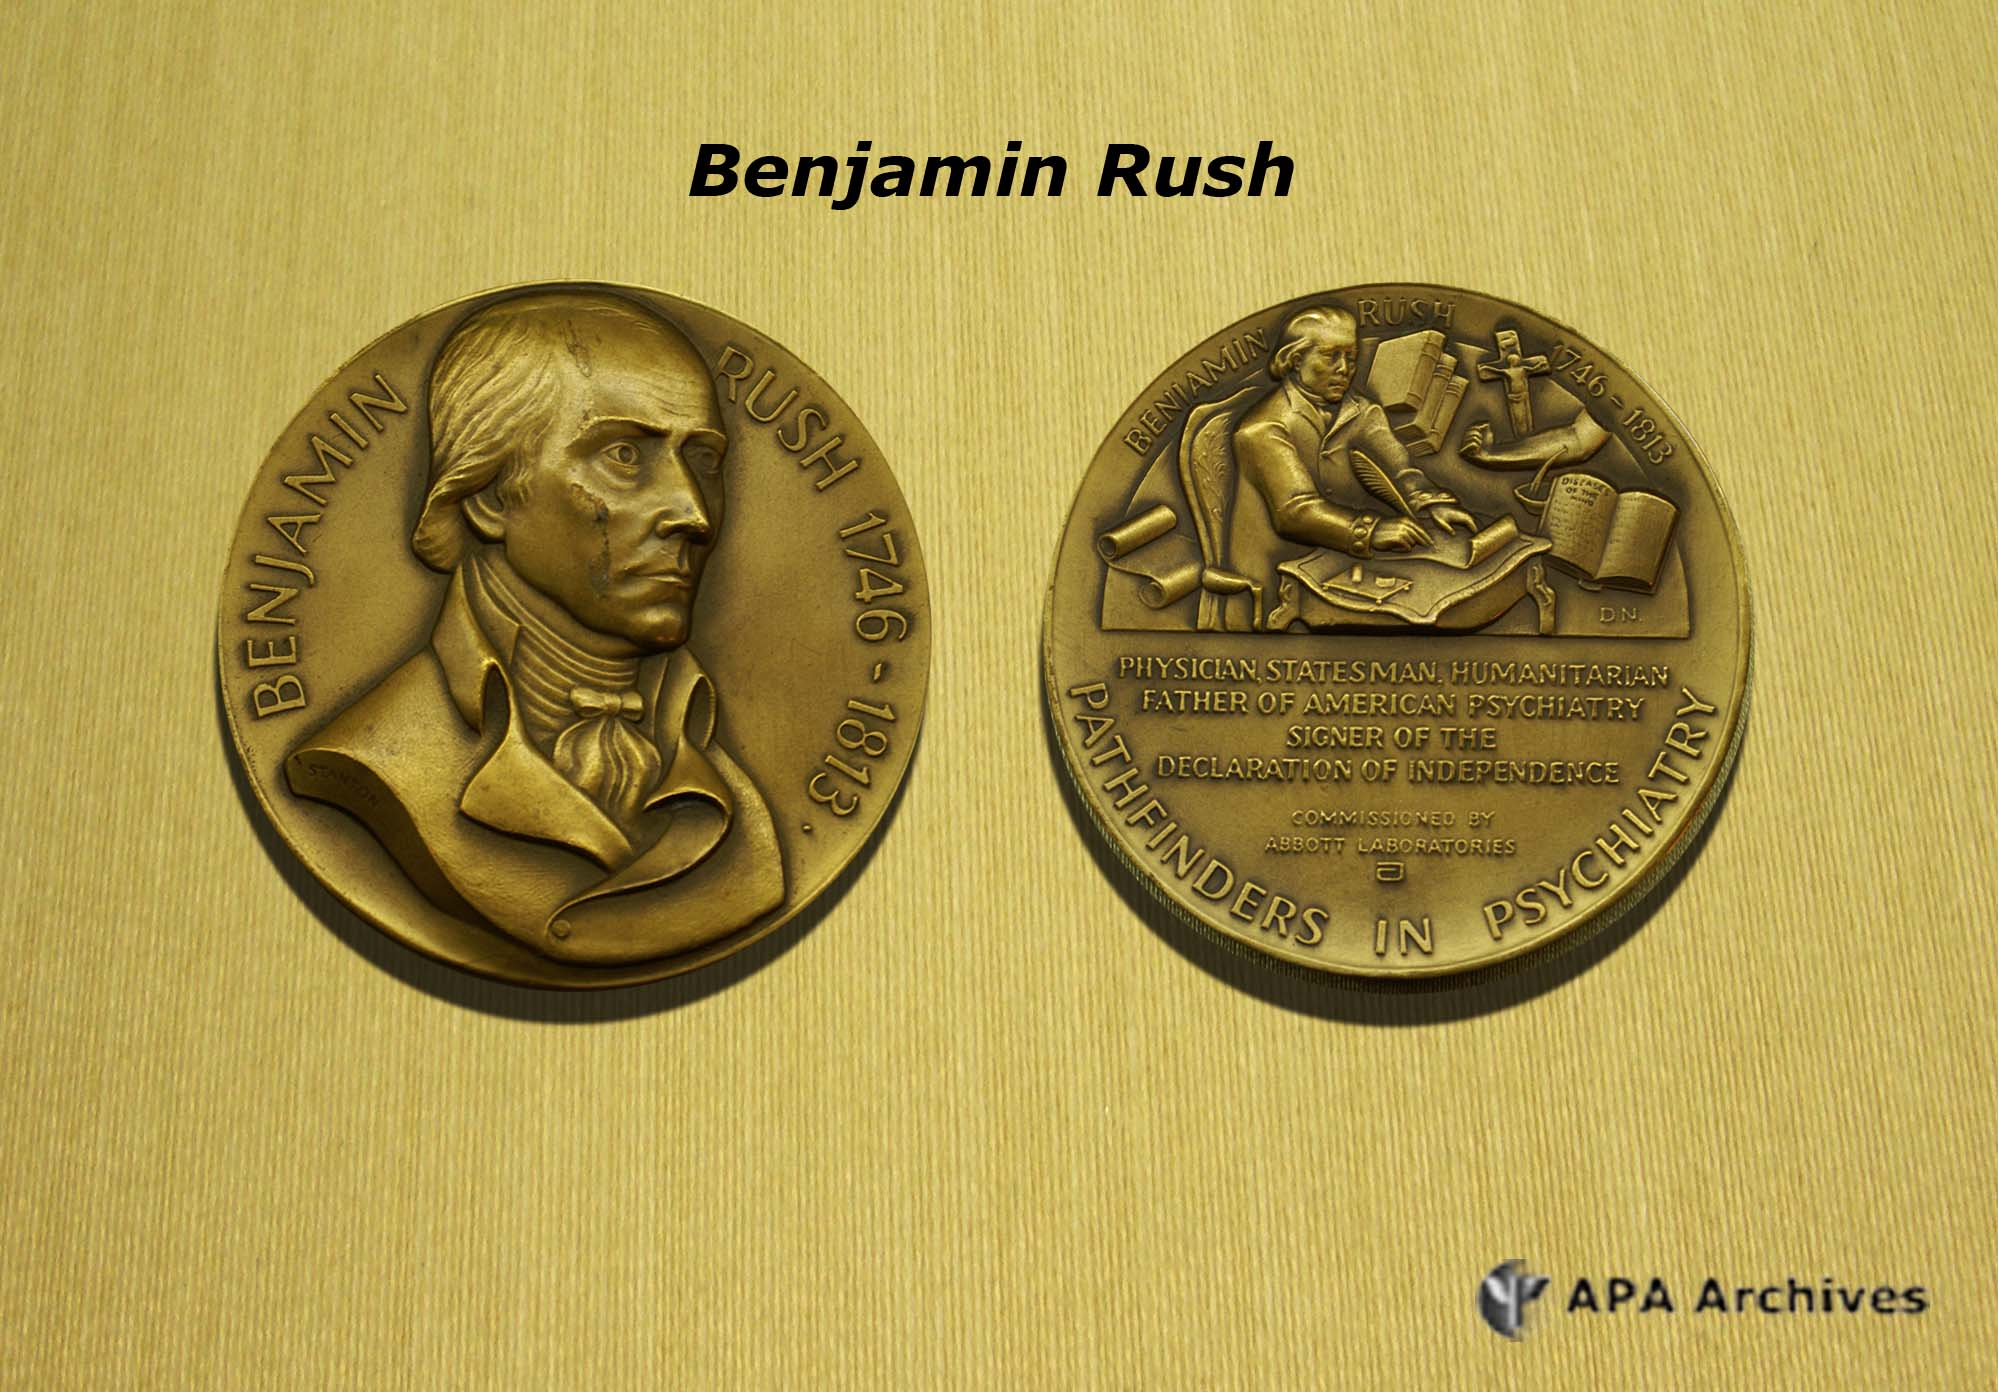 the life and medical education of benjamin rush Rush and the eighteenth-century anglo-american medical establishment  operated  2) introduce students to dr benjamin rush (show rush portrait)   wrote the letters to dr rush, and interpret how yellow fever impacted the  family's life.